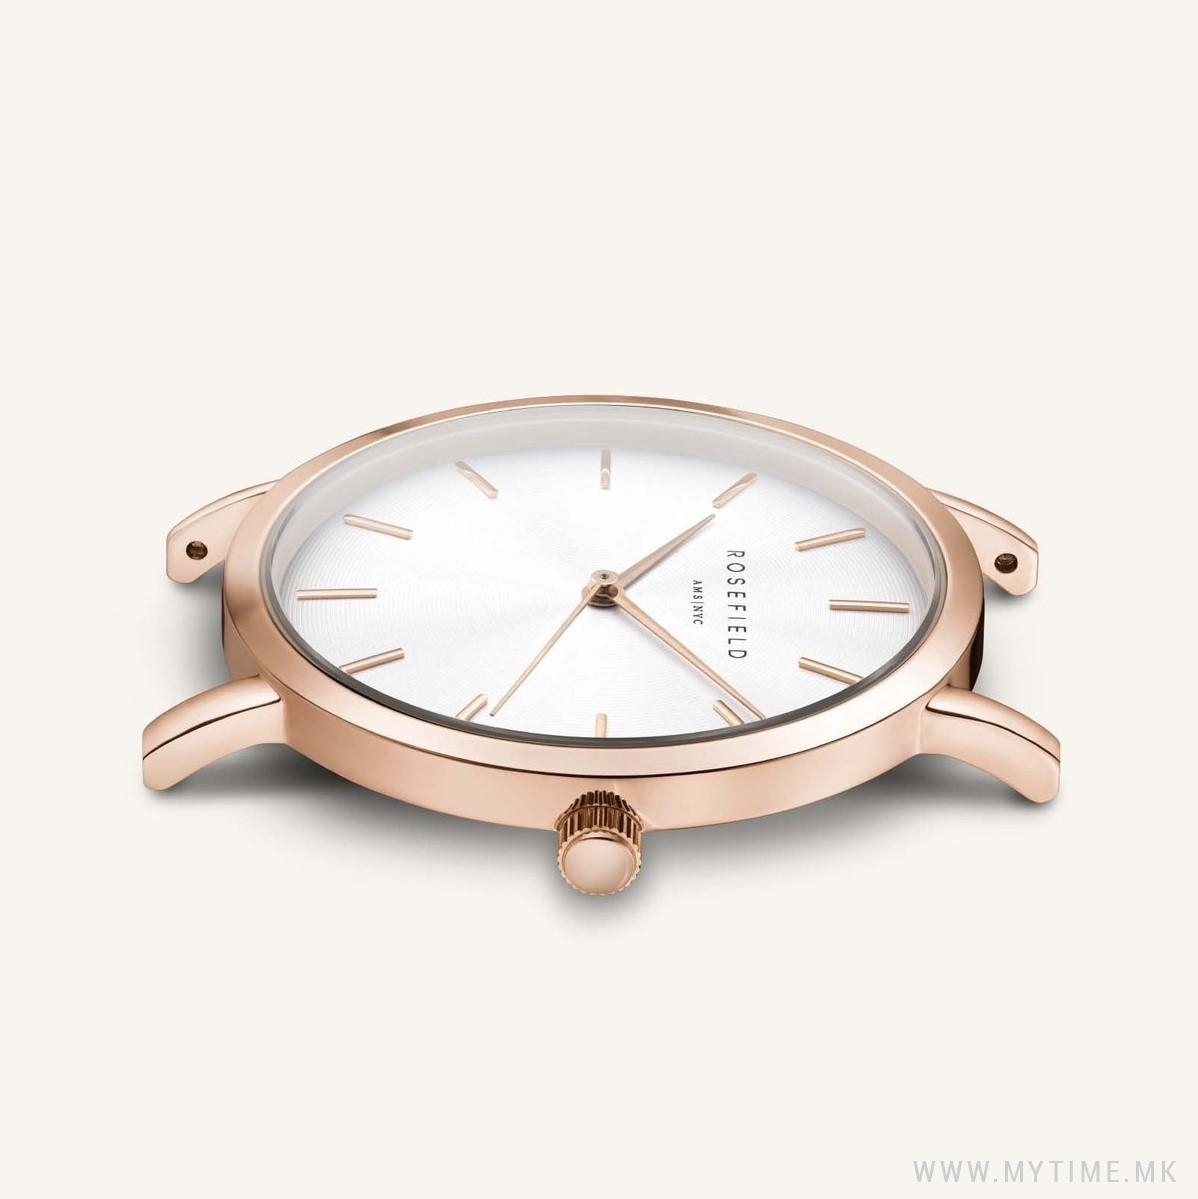 TWSSRG-T64 THE TRIBECA